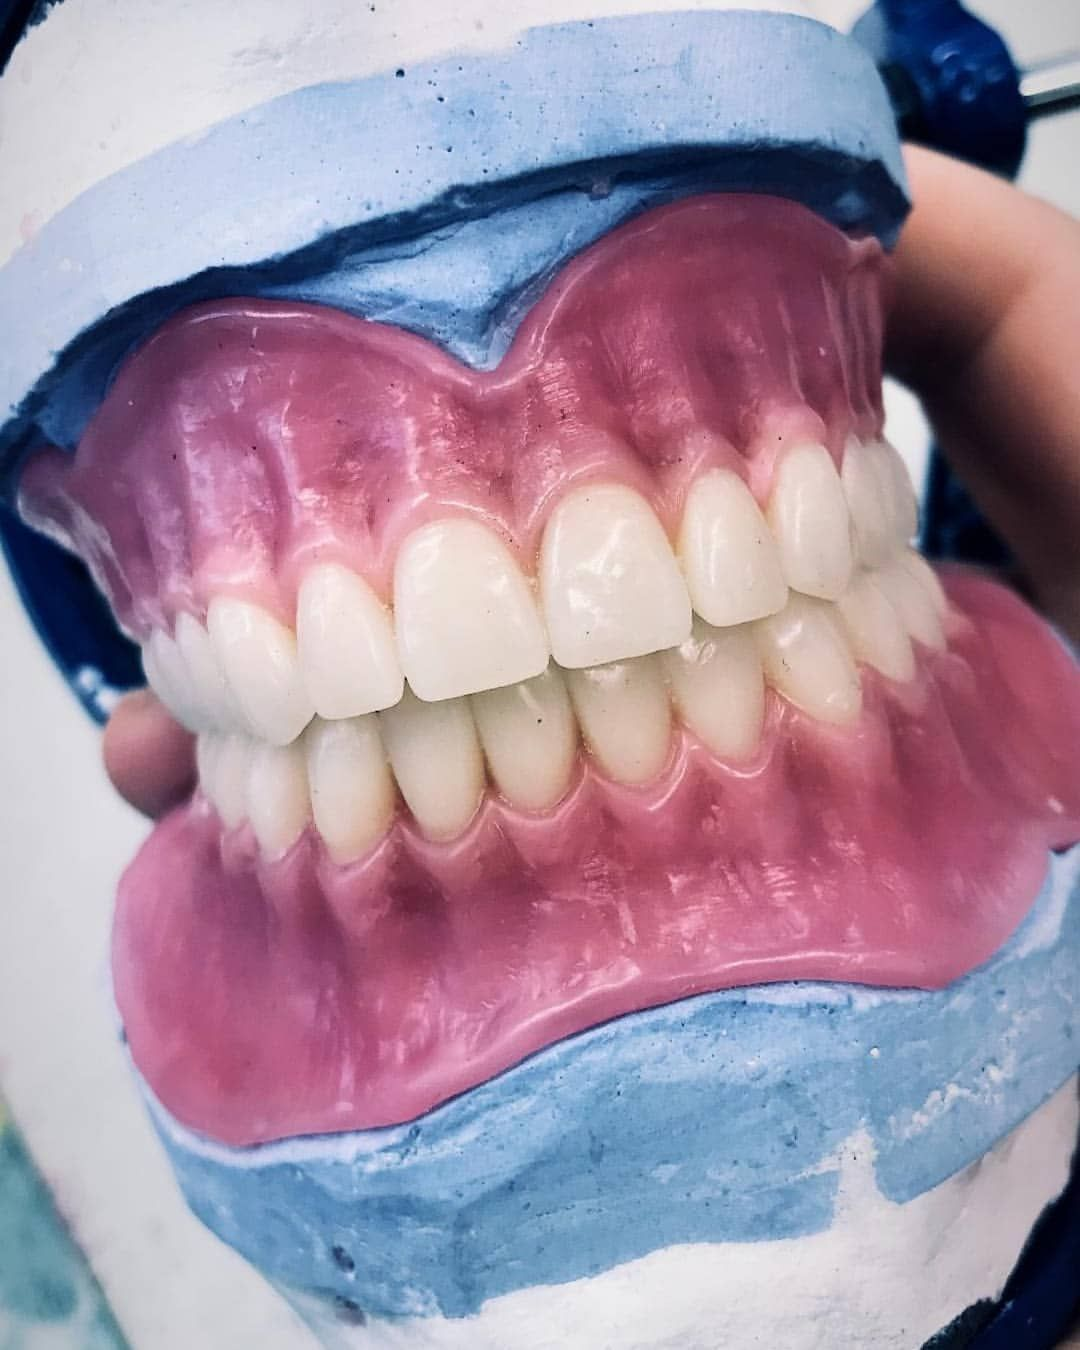 Placid Dental Surgery Before And After Oralhealththerapist Dentalsurgeryfood Teeth Implants Dental Dentures Dental Implants Cost